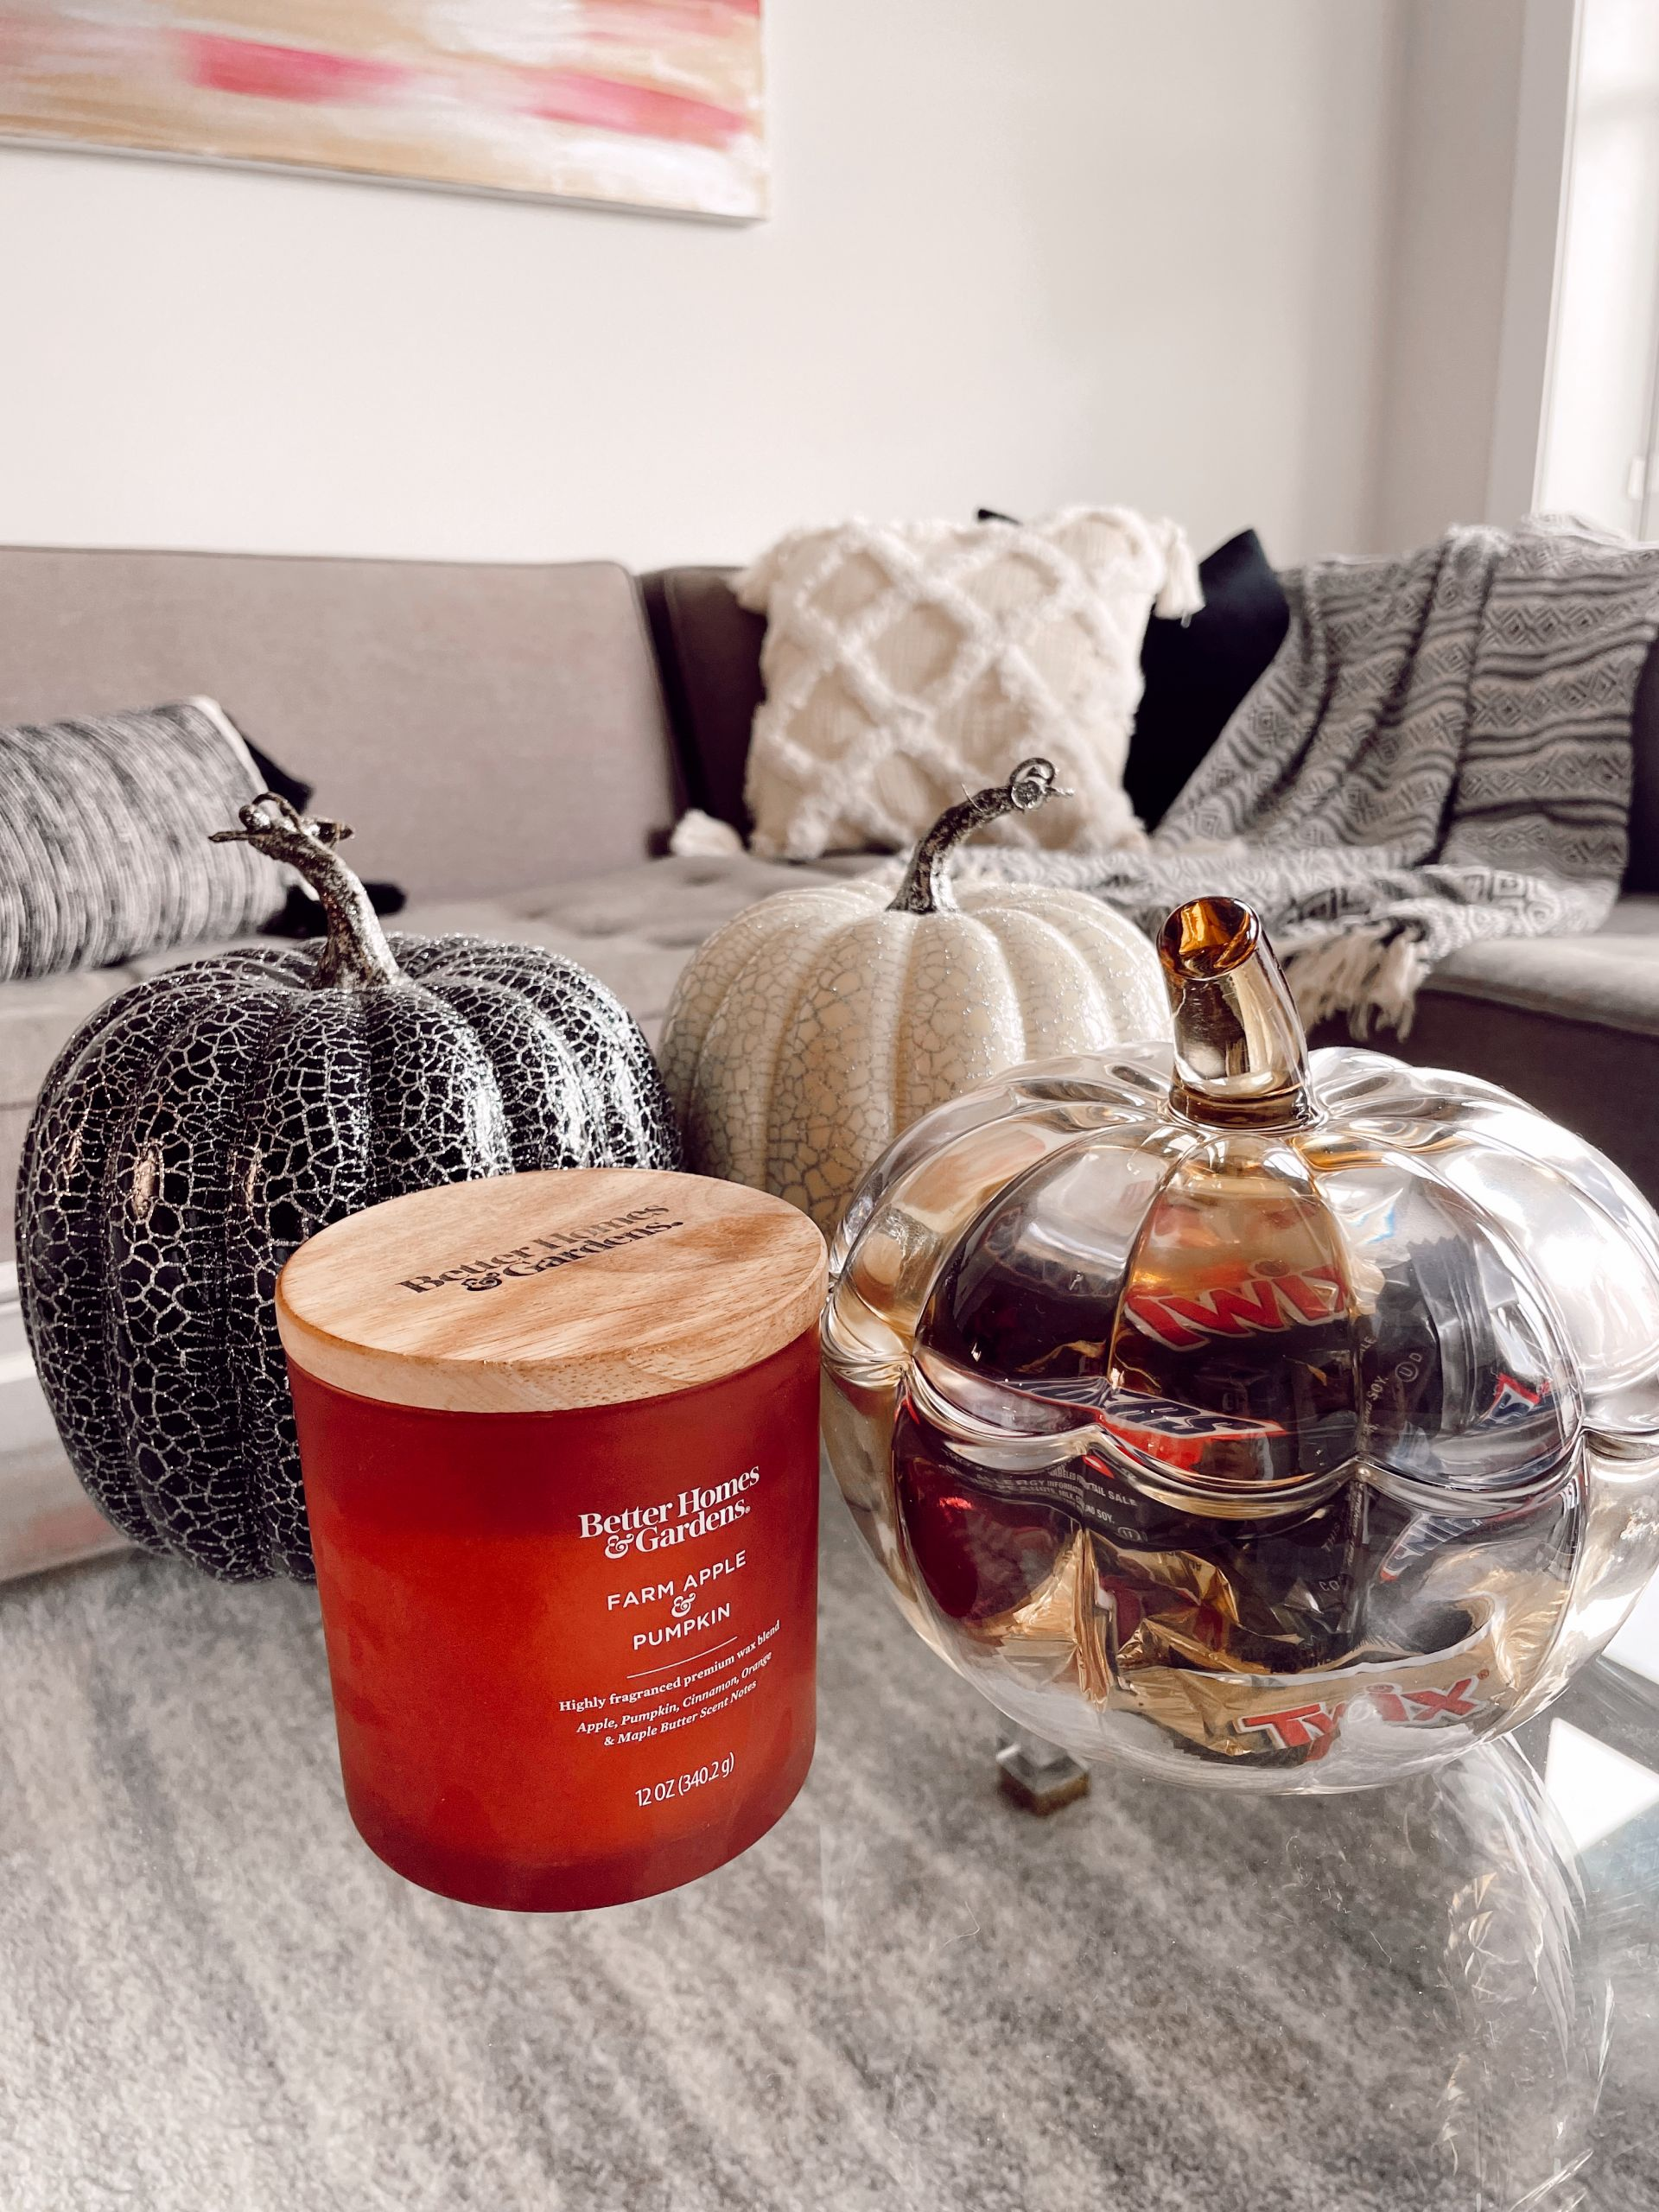 fall tabletop decor, fall coffee table ideas, coffee table decor, affordable home decor, fall home decor, subtle Subtle Touches of Fall to your Home, home decor inspiration, fall home inspiration, black and white fall decor, glam fall decor, neutralfall decor, pretty pumpkindecor, fall decor ideas, pretty fall decor, Red Soles and Red Wine, Jennifer Worman